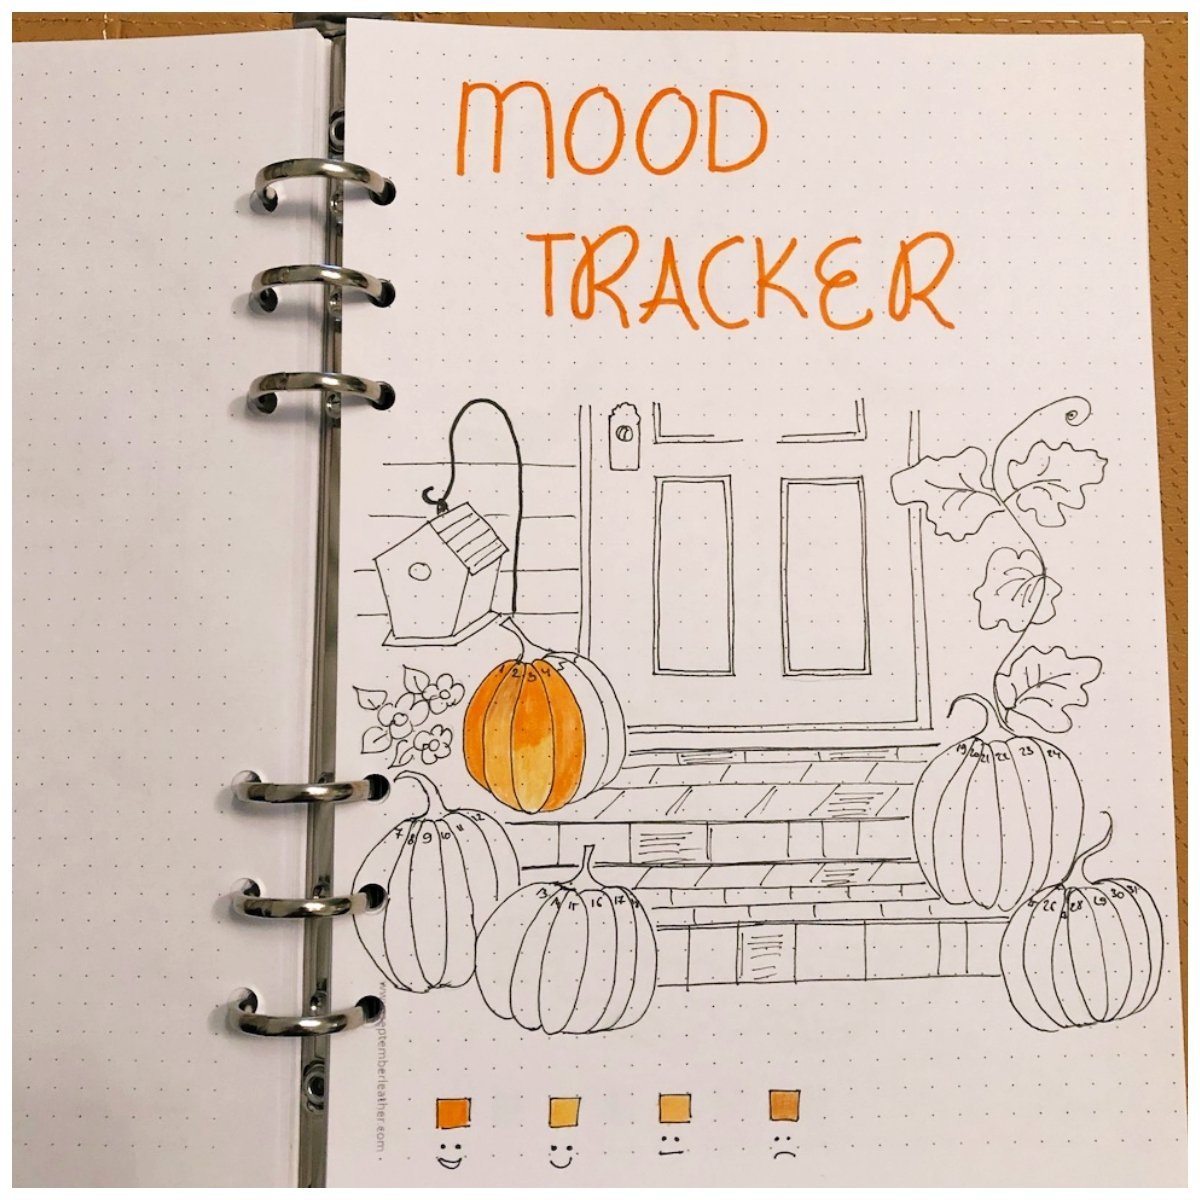 Pumpkin Mood Tracker for your Bullet Journal - itstartswithacoffee.com #bulletjournal #bujo #tracker #moodtracker